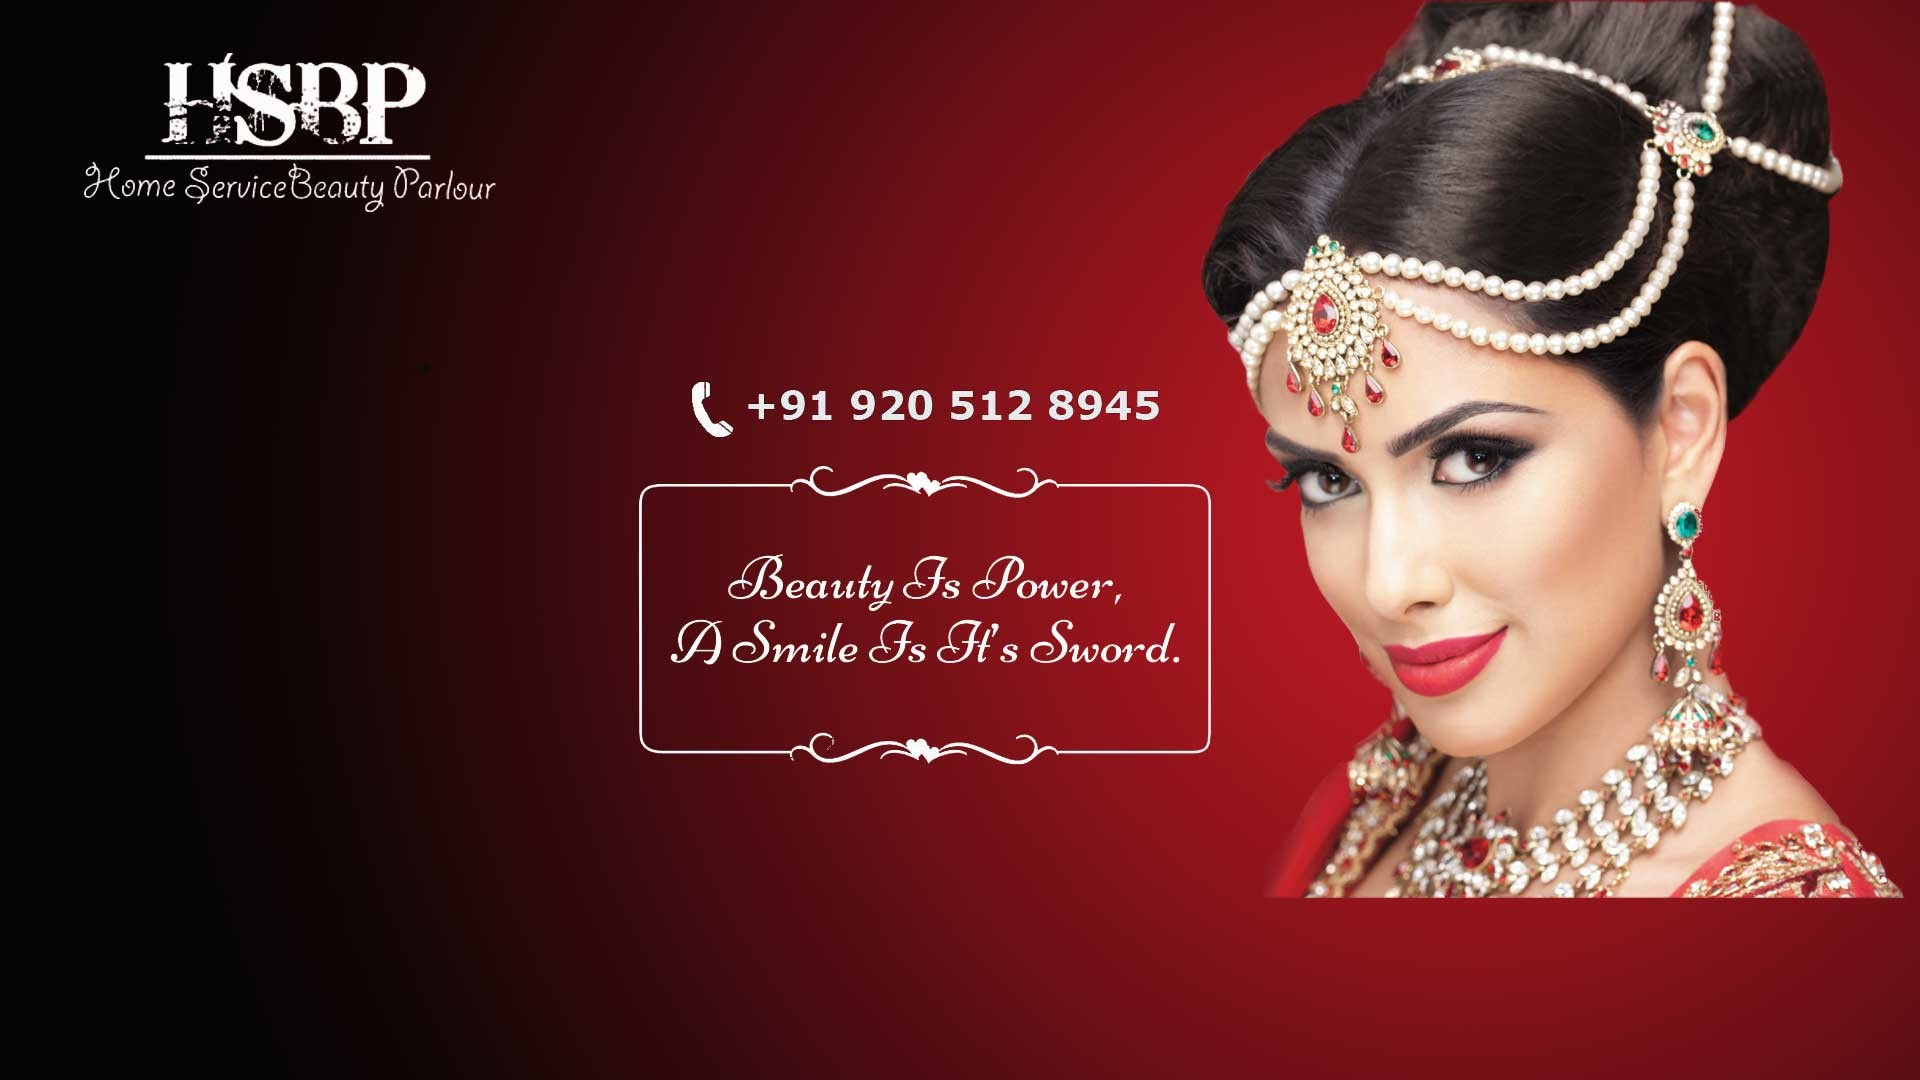 Res: 1920x1080, Hotels, Foods, Preschools, Jewellery, Clothes, Beauty Parlour in Pune near  me- Around Found